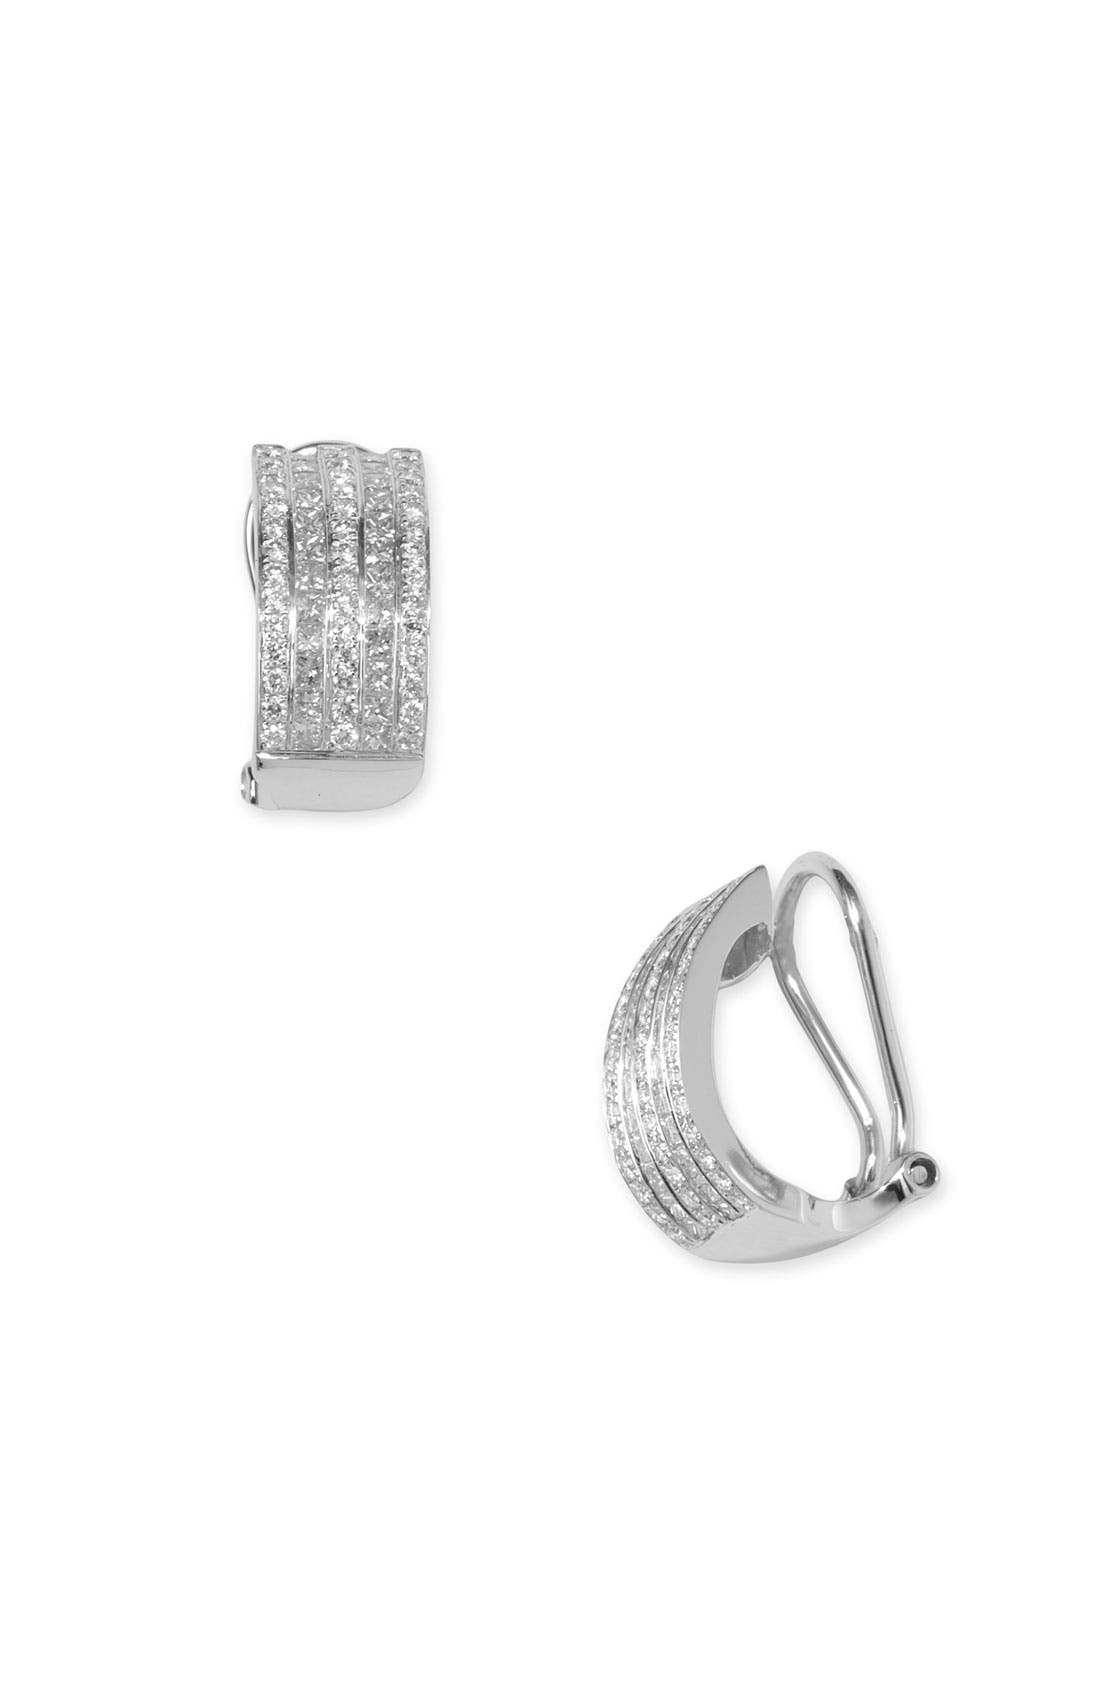 Main Image - Bony Levy Five Row Diamond Earrings (Nordstrom Exclusive)